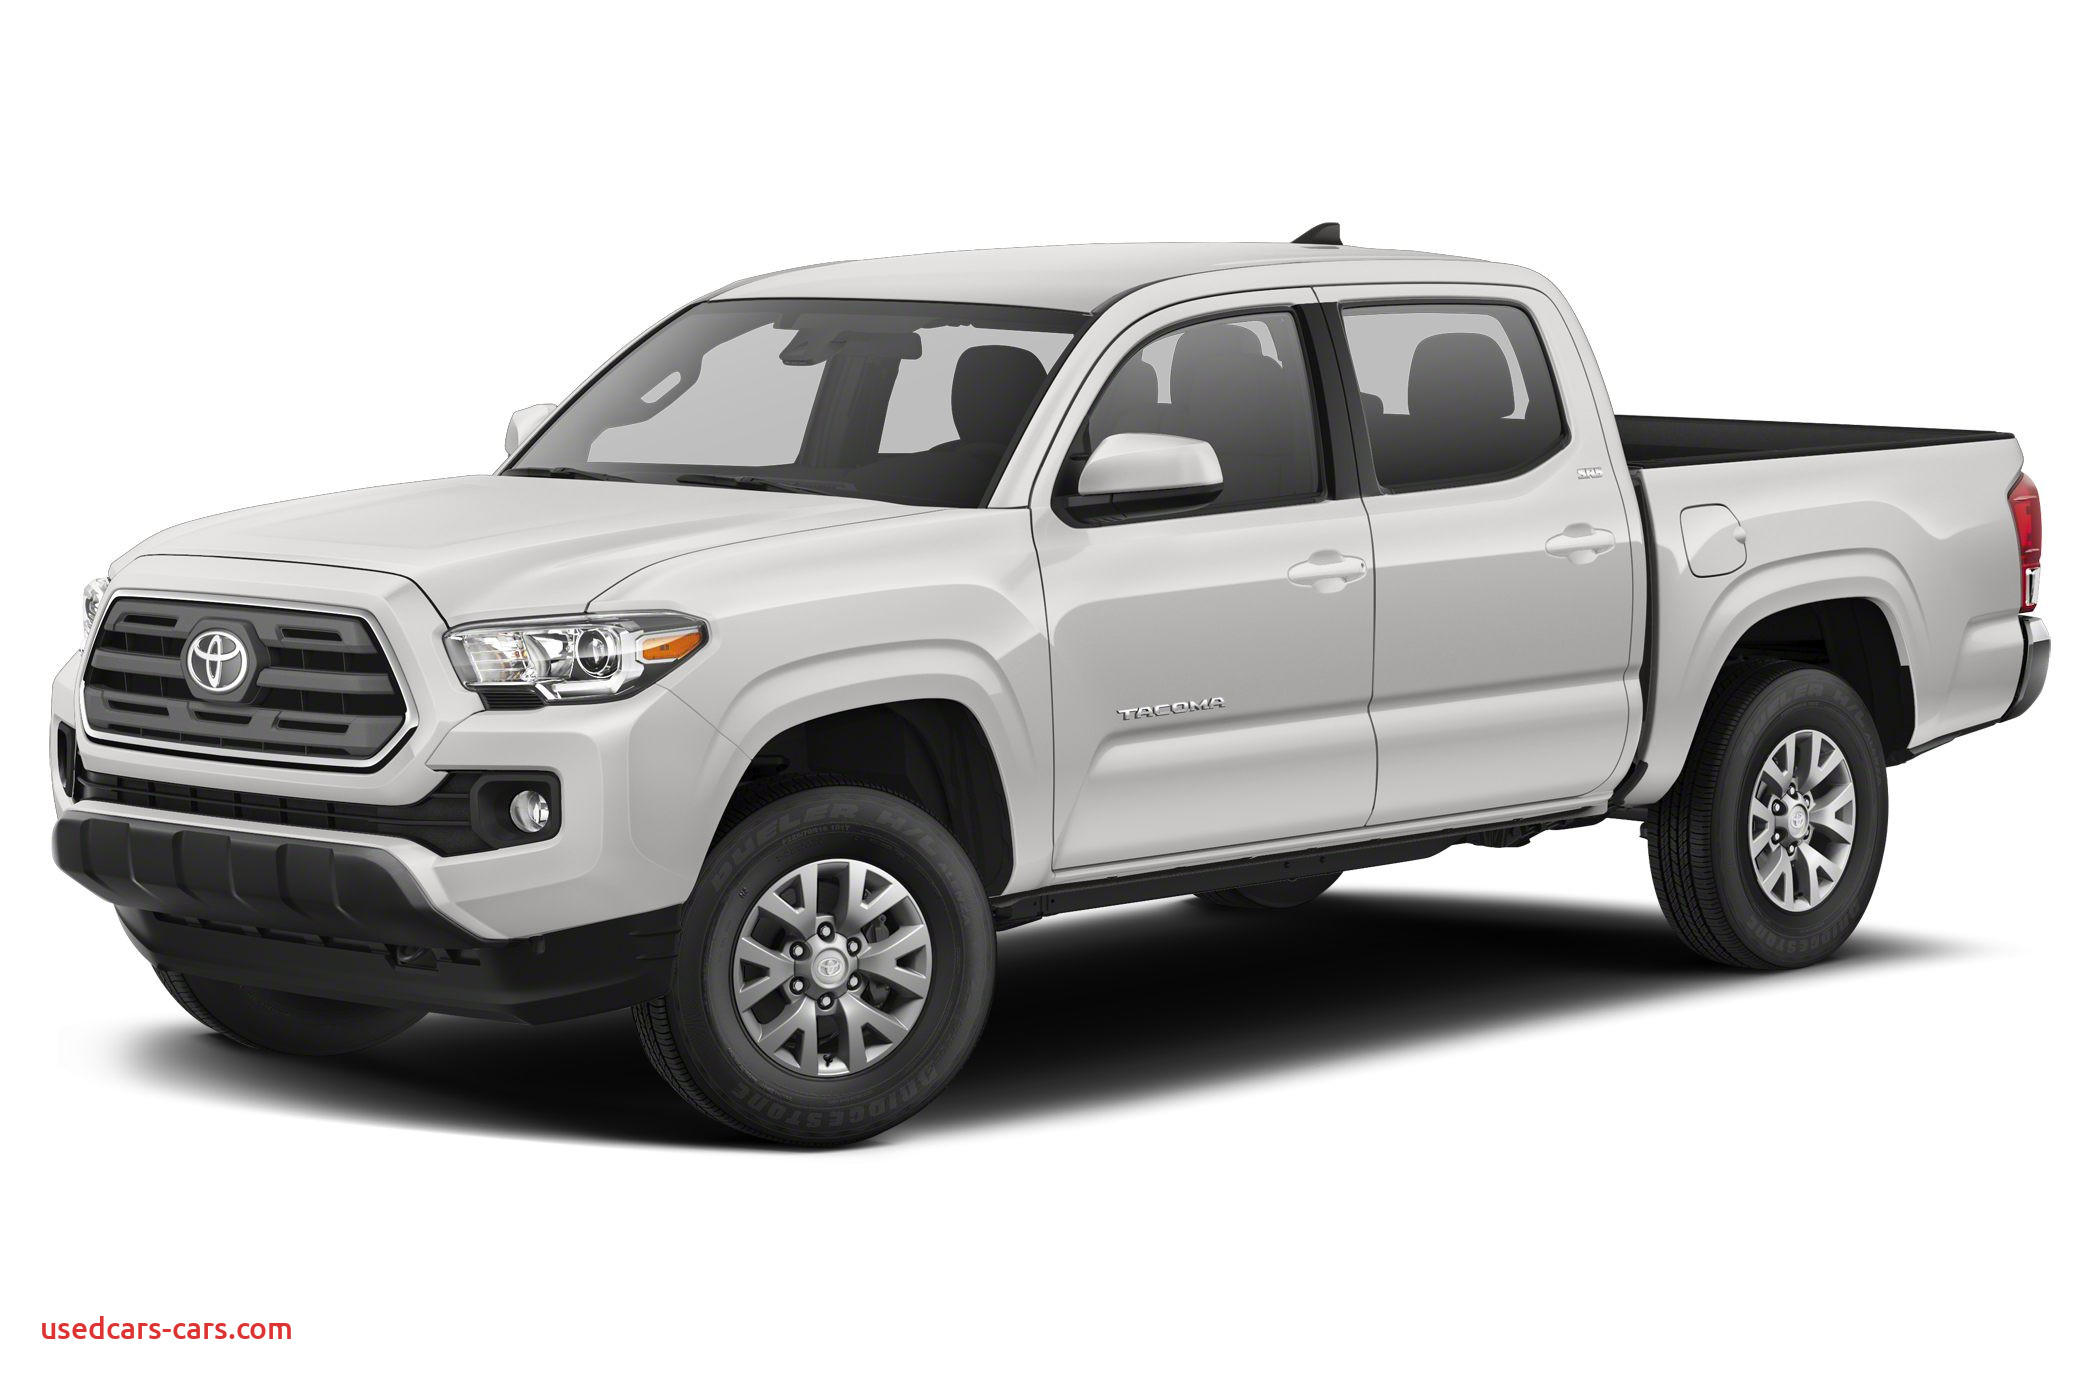 Tacoma Double Cab Long Bed Elegant 2017 toyota Ta A Sr5 V6 4×4 Double Cab 140 6 In Wb